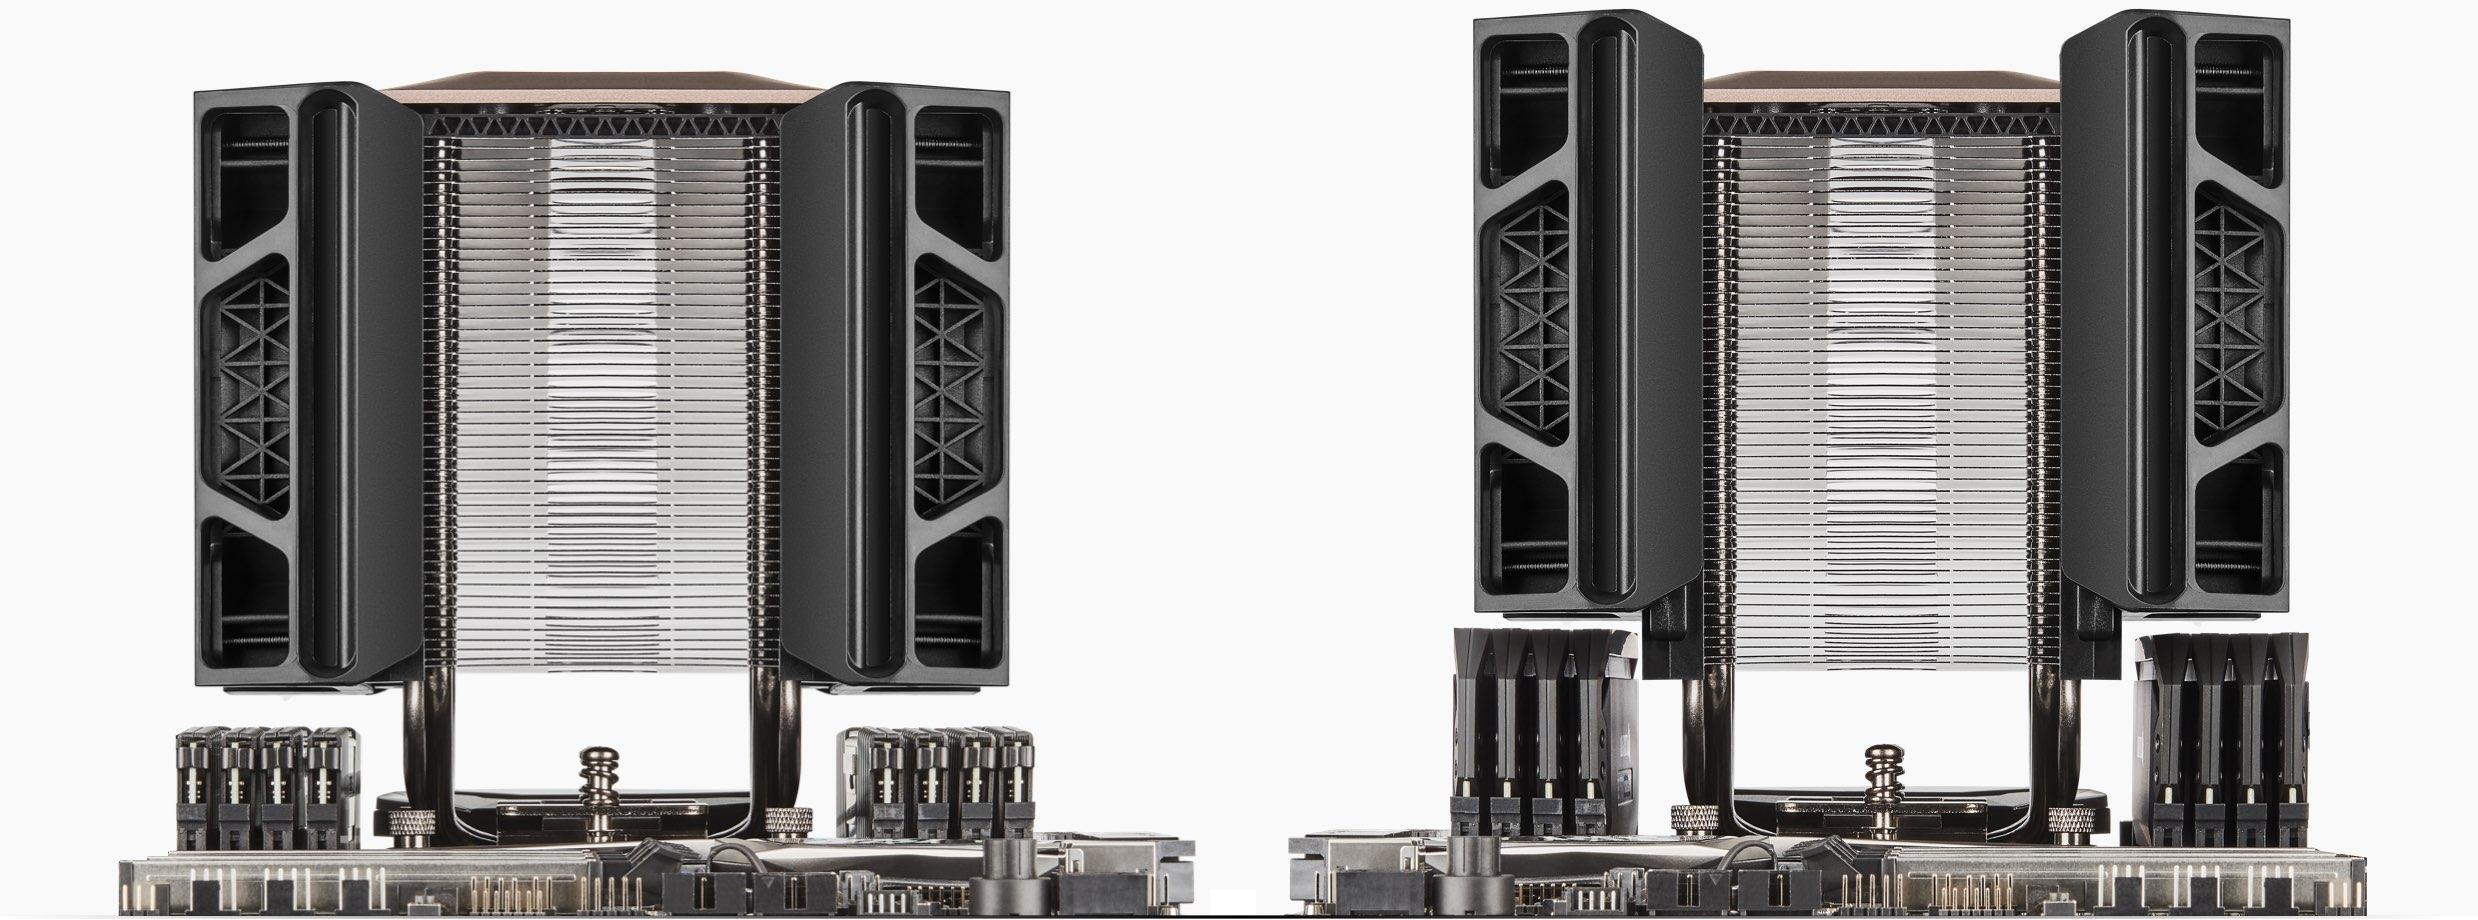 Side by side images that show how the fans can be moved in and out in order to fit high-profile RAM sticks.